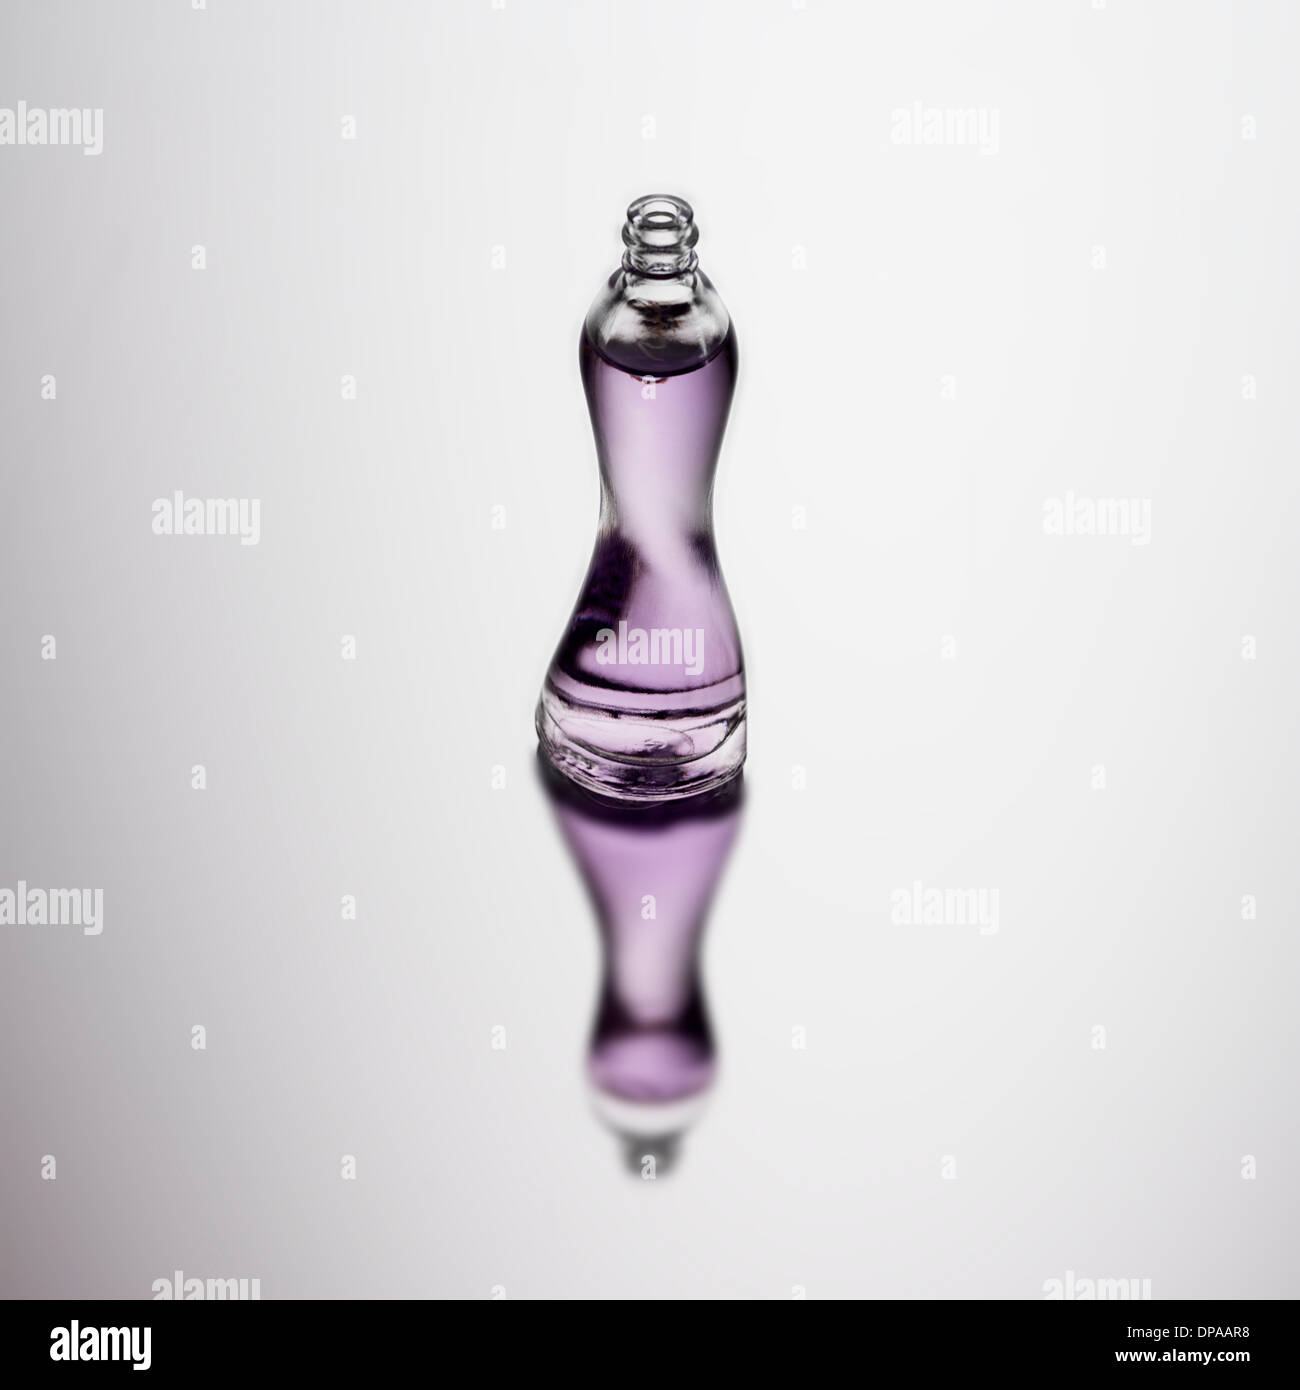 Bottle of perfume with reflection - Stock Image